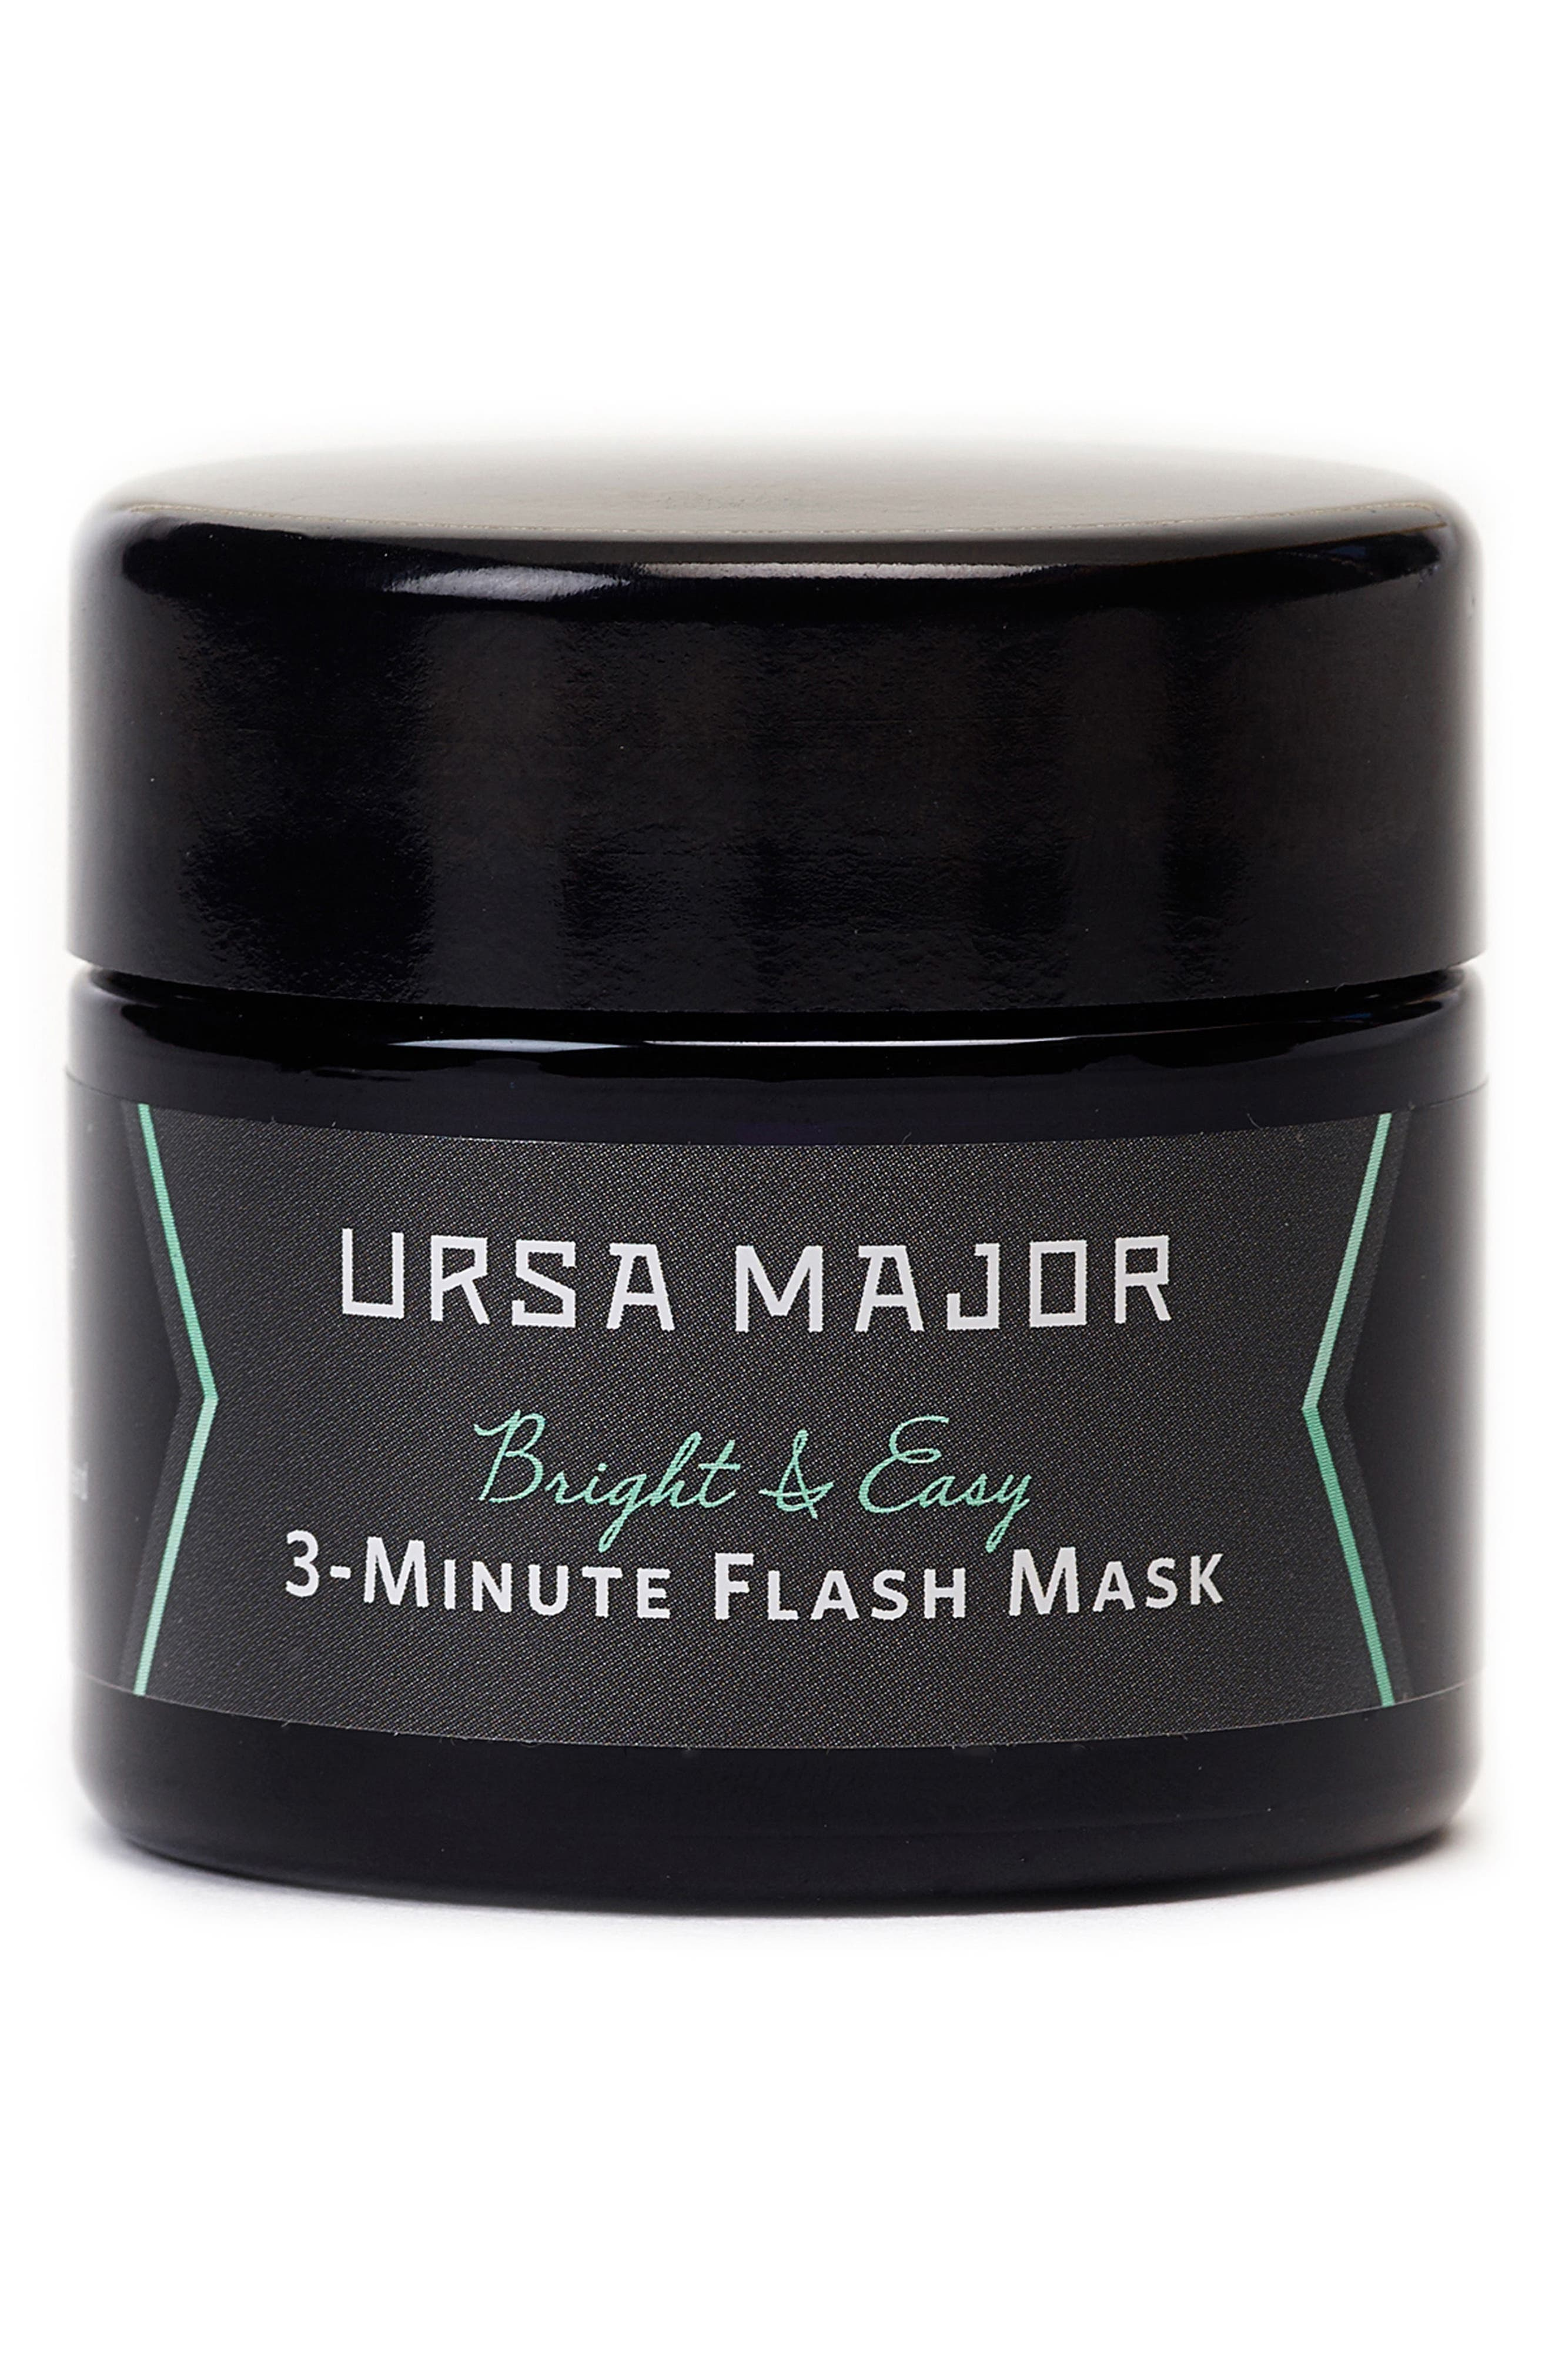 Bright & Easy 3-Minute Flash Mask,                         Main,                         color, No Color